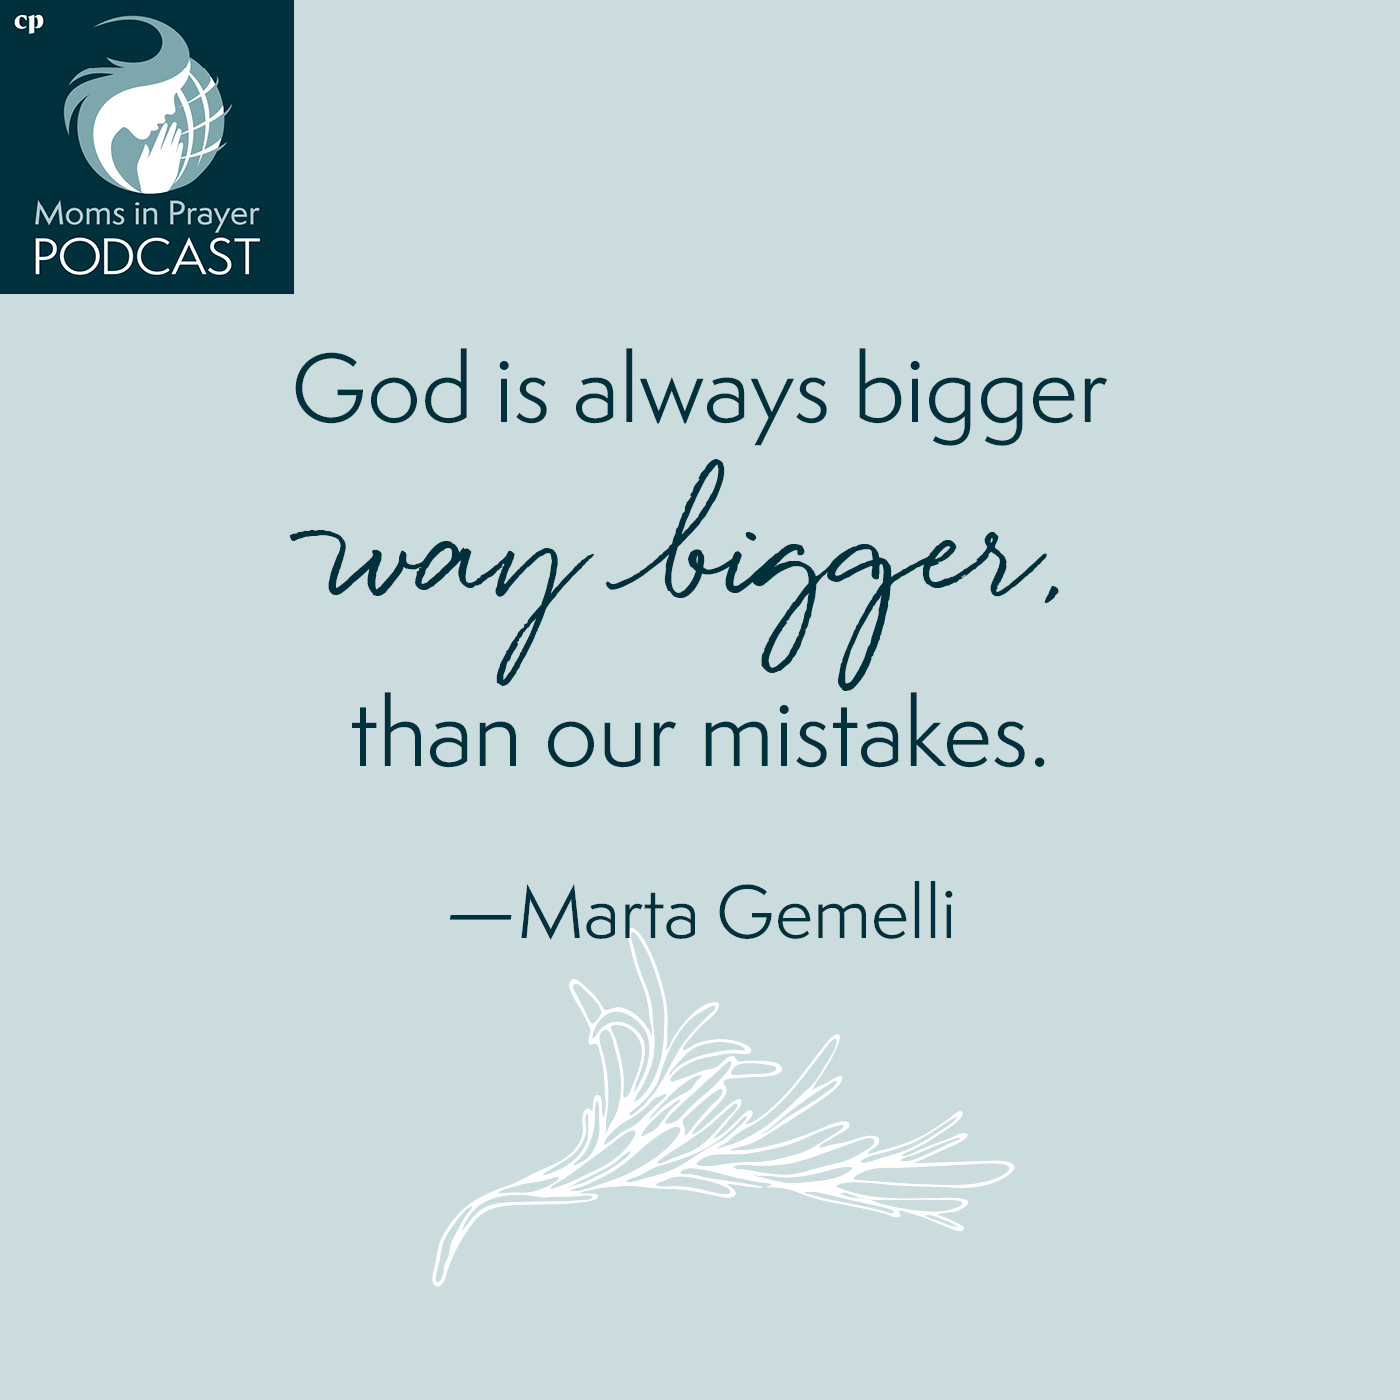 God is way bigger than our mistakes